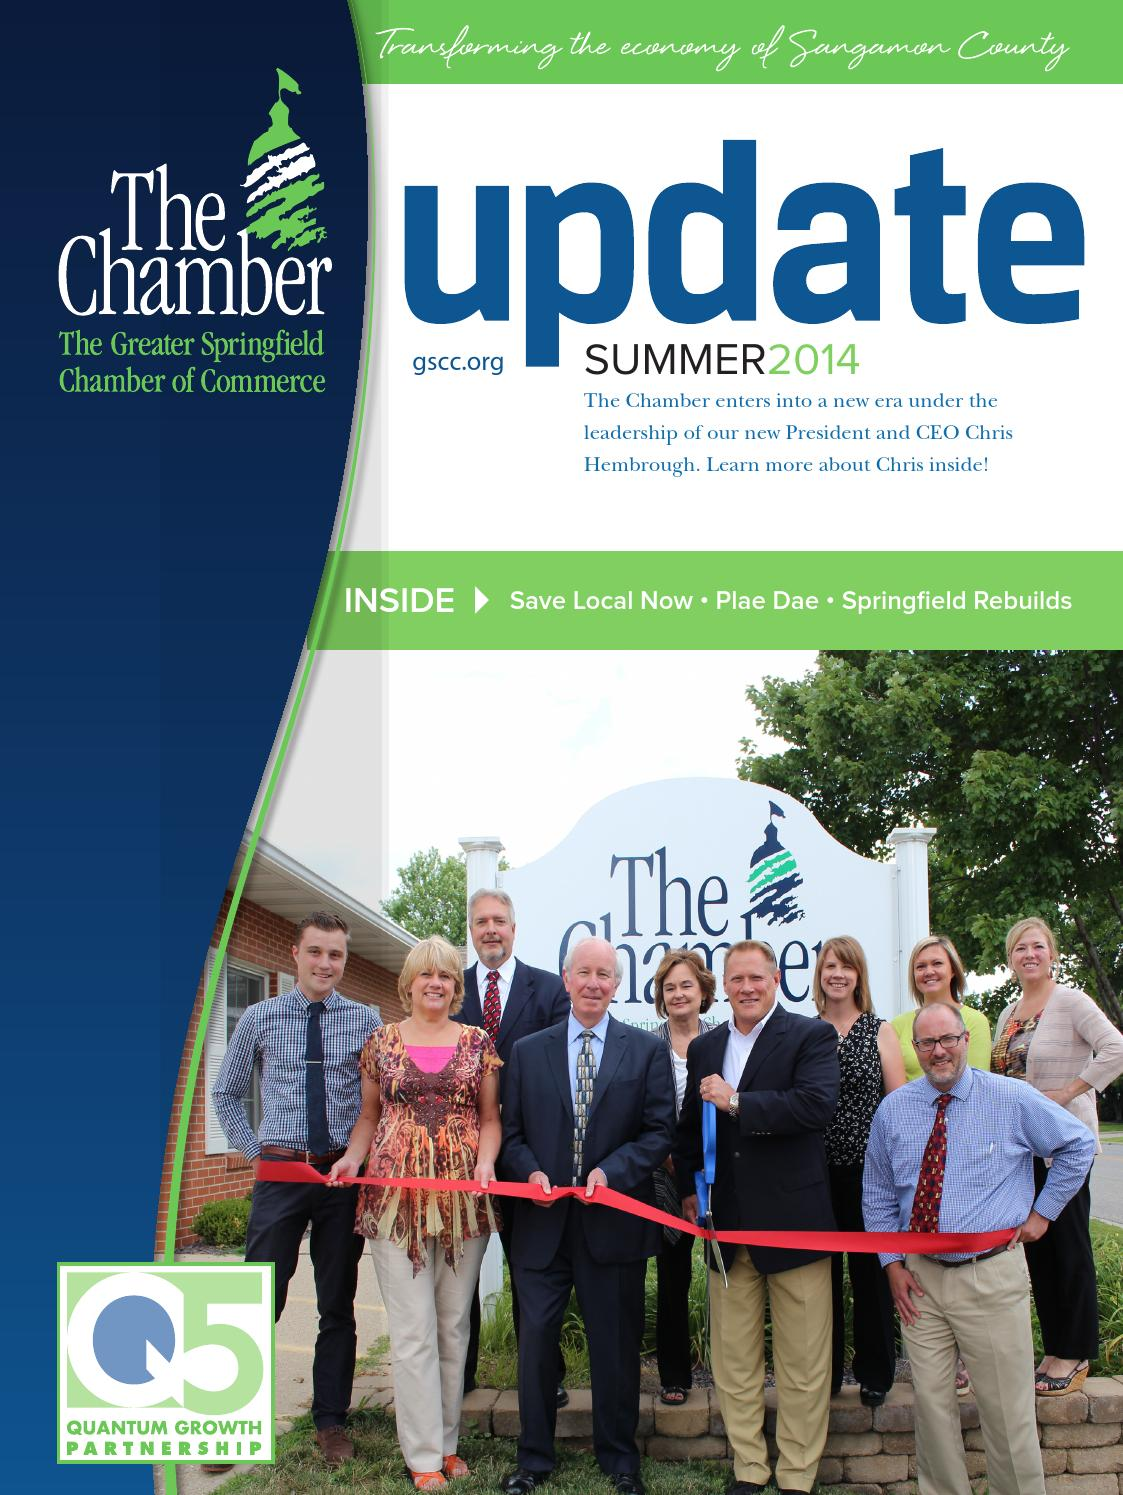 Update - Summer 2014 by The Greater Springfield Chamber of